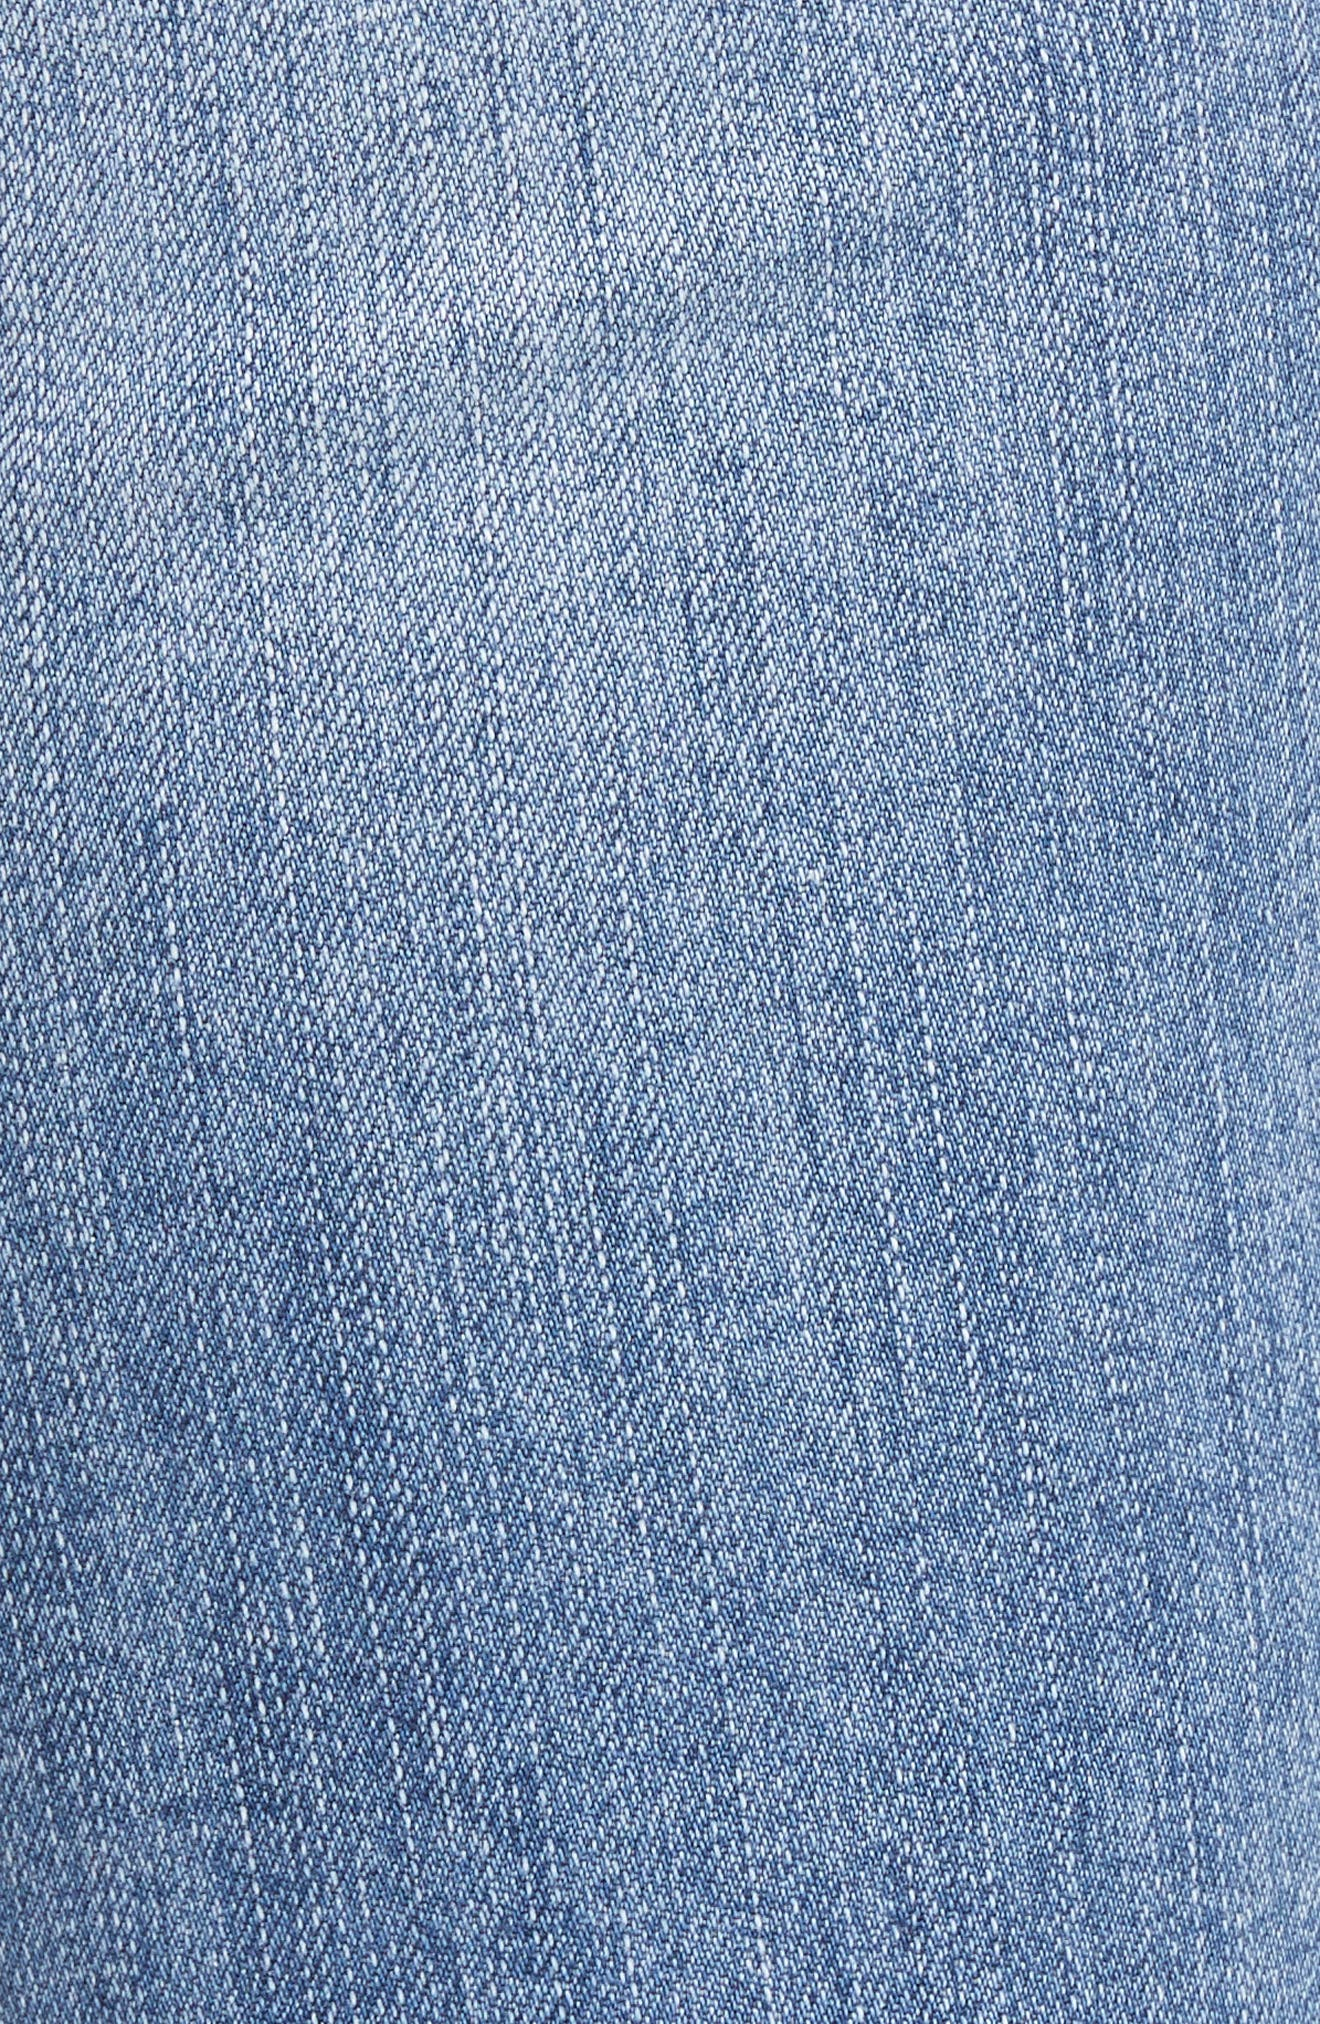 Reese Pearl Detail Raw Edge Jeans,                             Alternate thumbnail 5, color,                             439